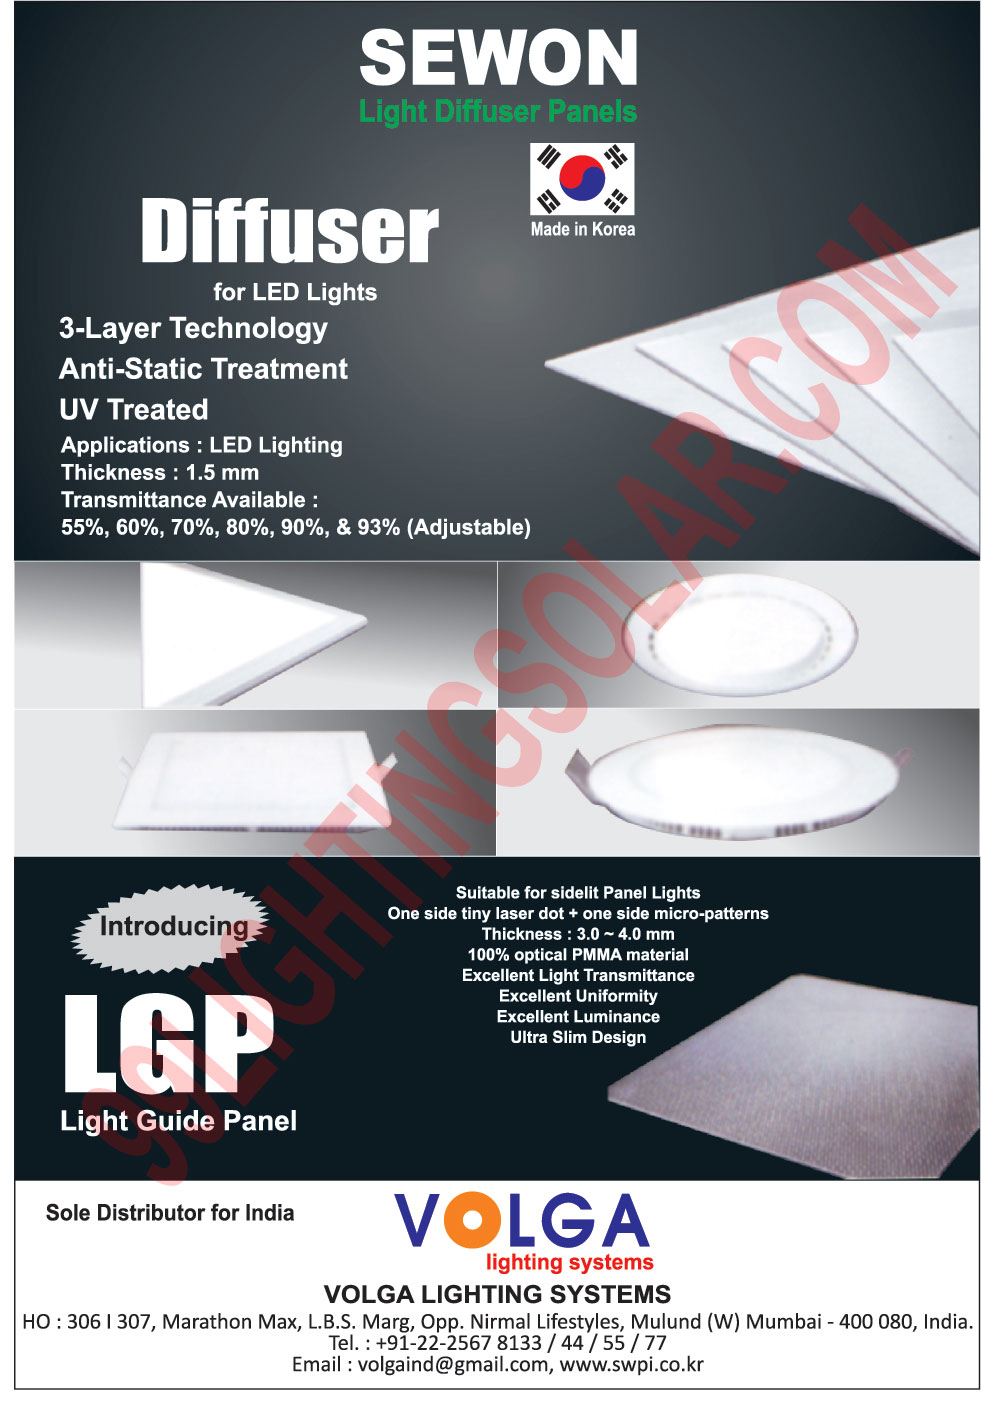 Led Light Diffusers, Light Diffuser Panels, Light Guide Panels,Diffuser